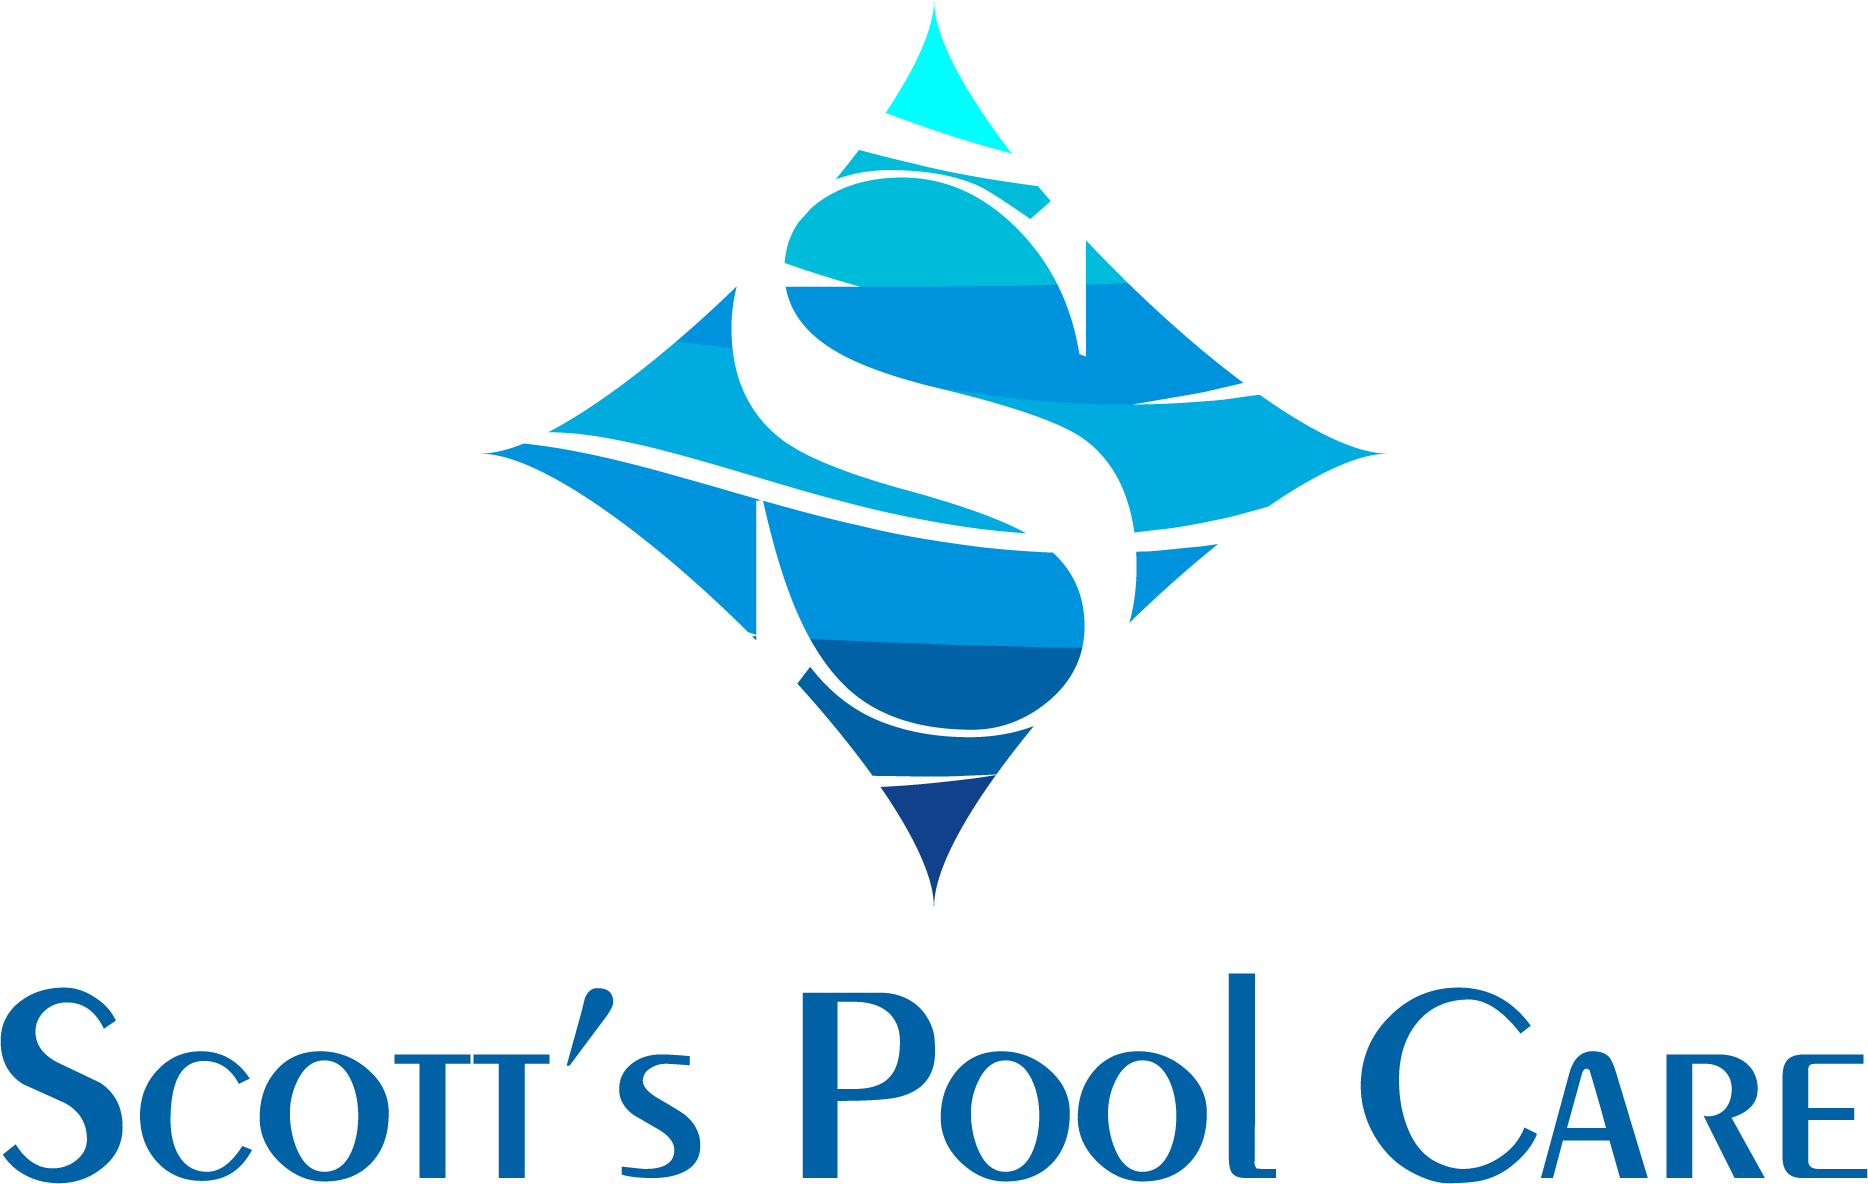 Scott's Pool Care